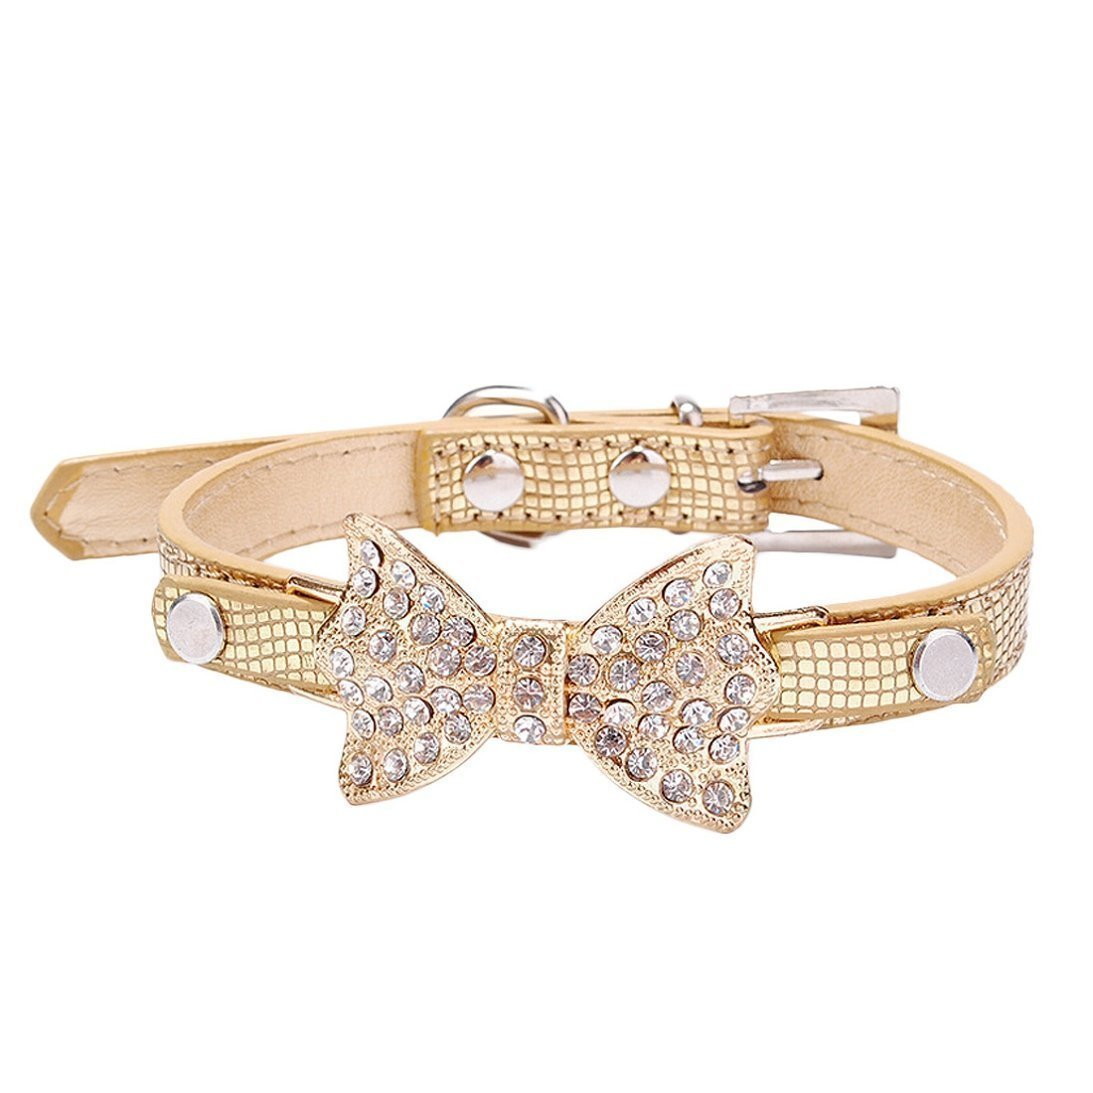 gold-bling-bowtie-dog-collar